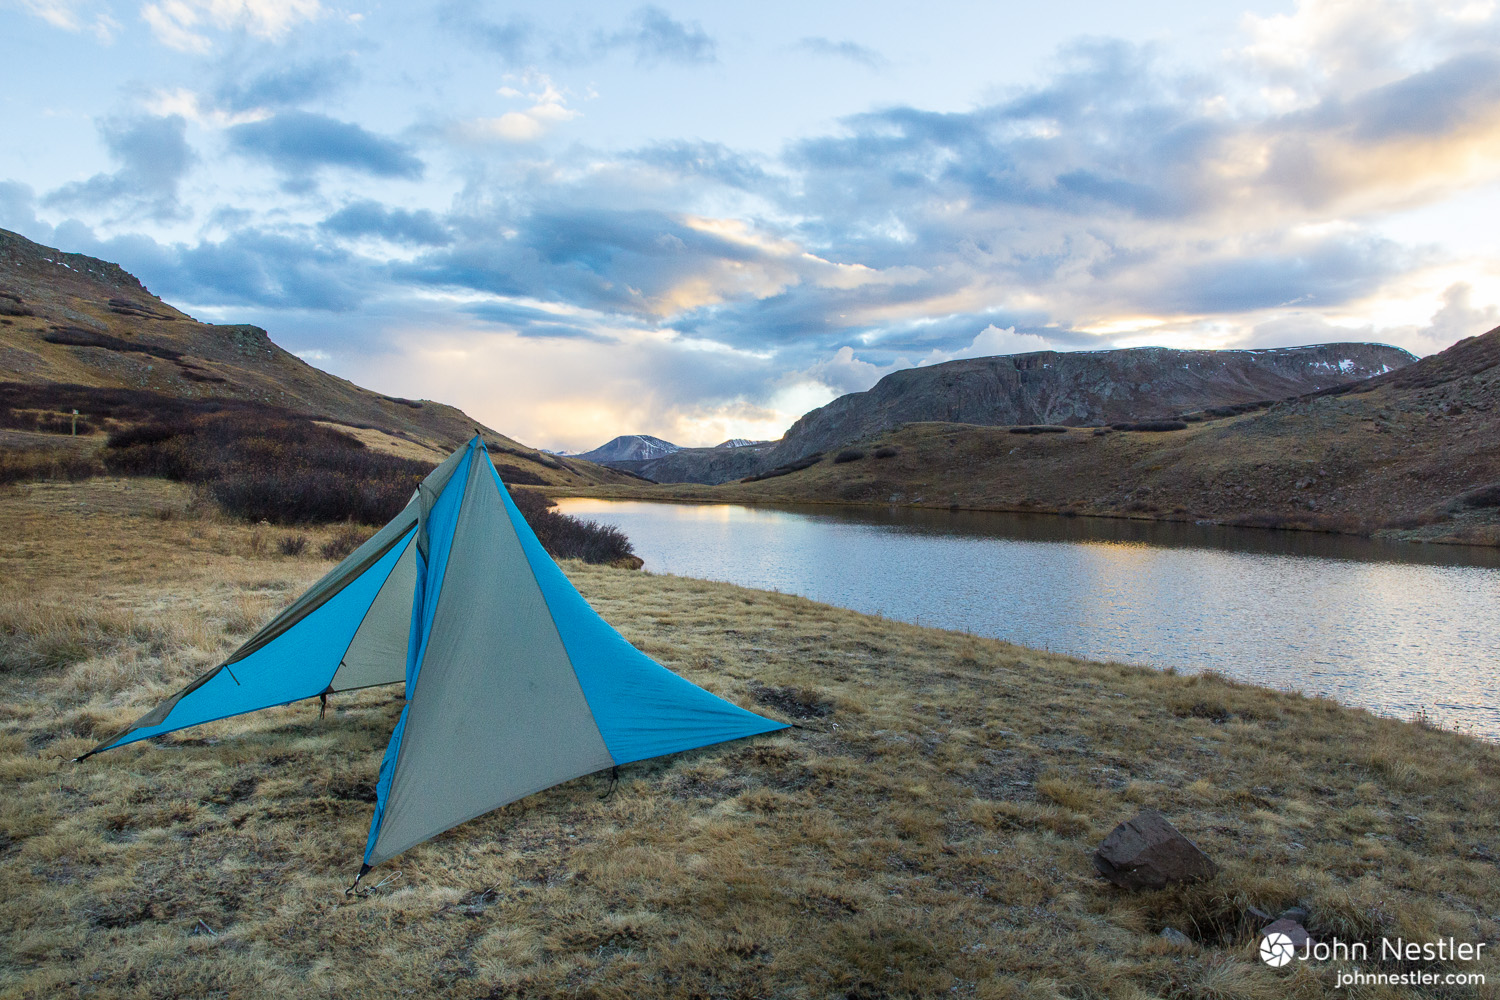 A view of possibly the most beautiful campsite on the whole trip. Few things match the experience of sunset colors and alpine lakes after a long day of riding. Shot by a small lake near Cataract Lake in Segment 23.